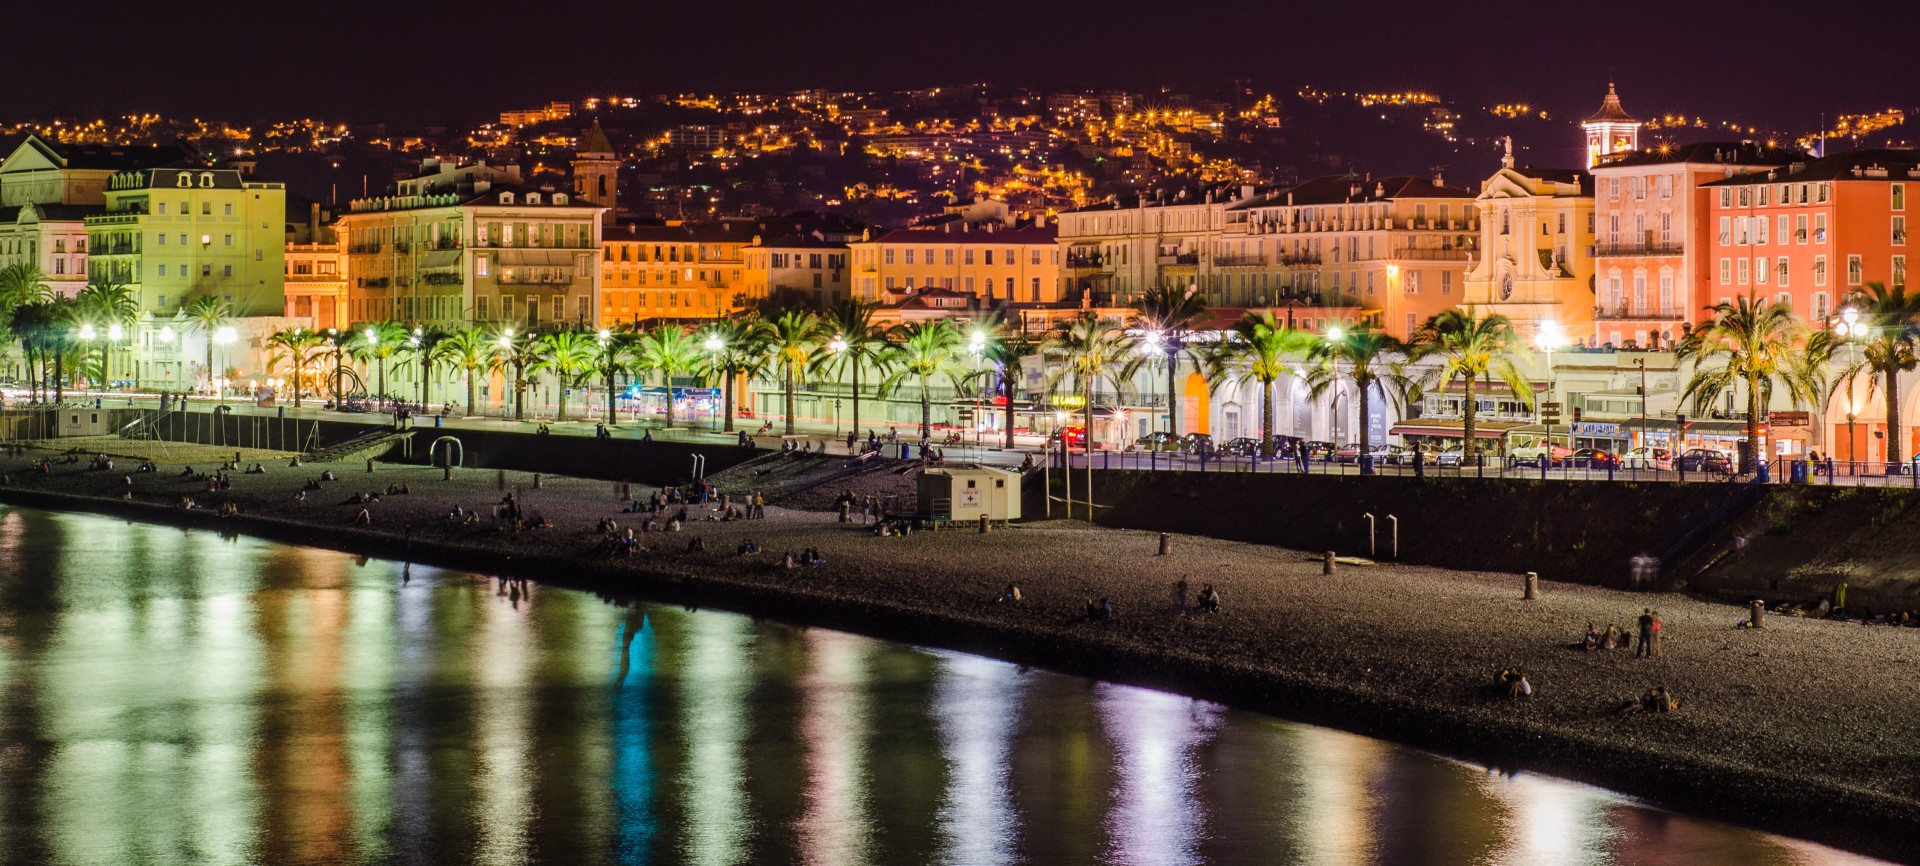 where are the bars in nice